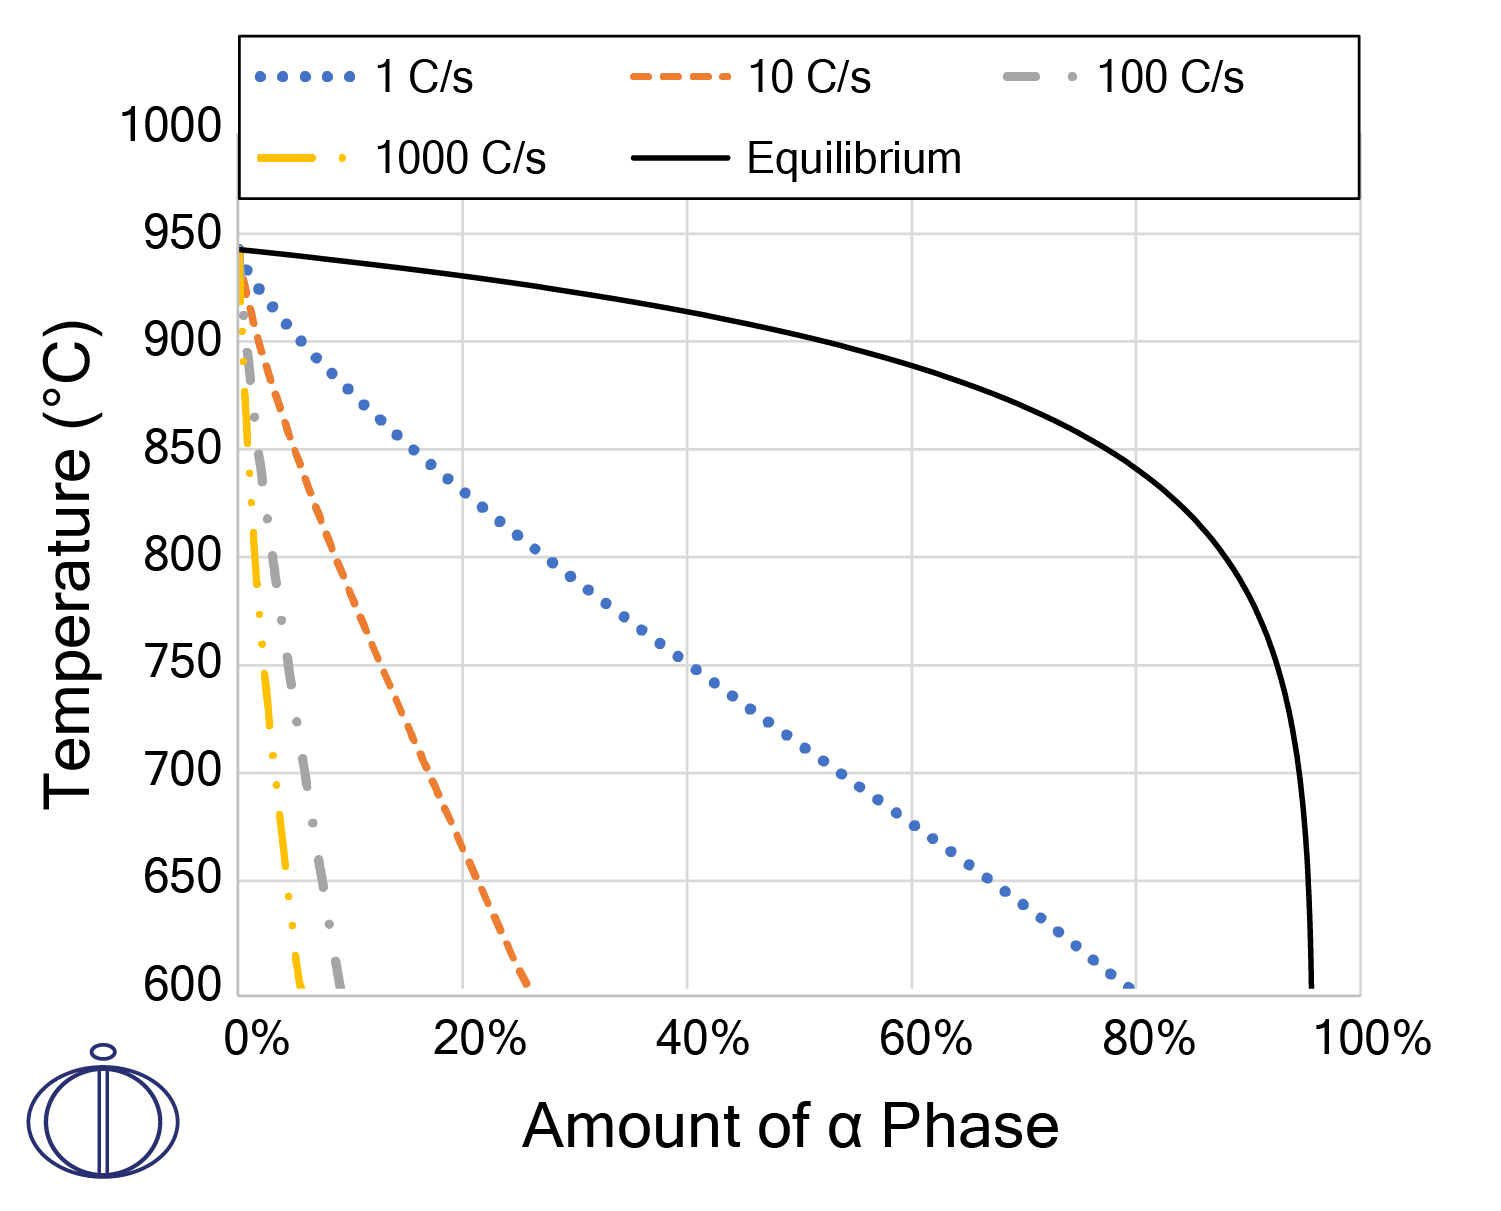 A plot showing the phase balance in Ti-6Al-4V as a function of different cooling rates.